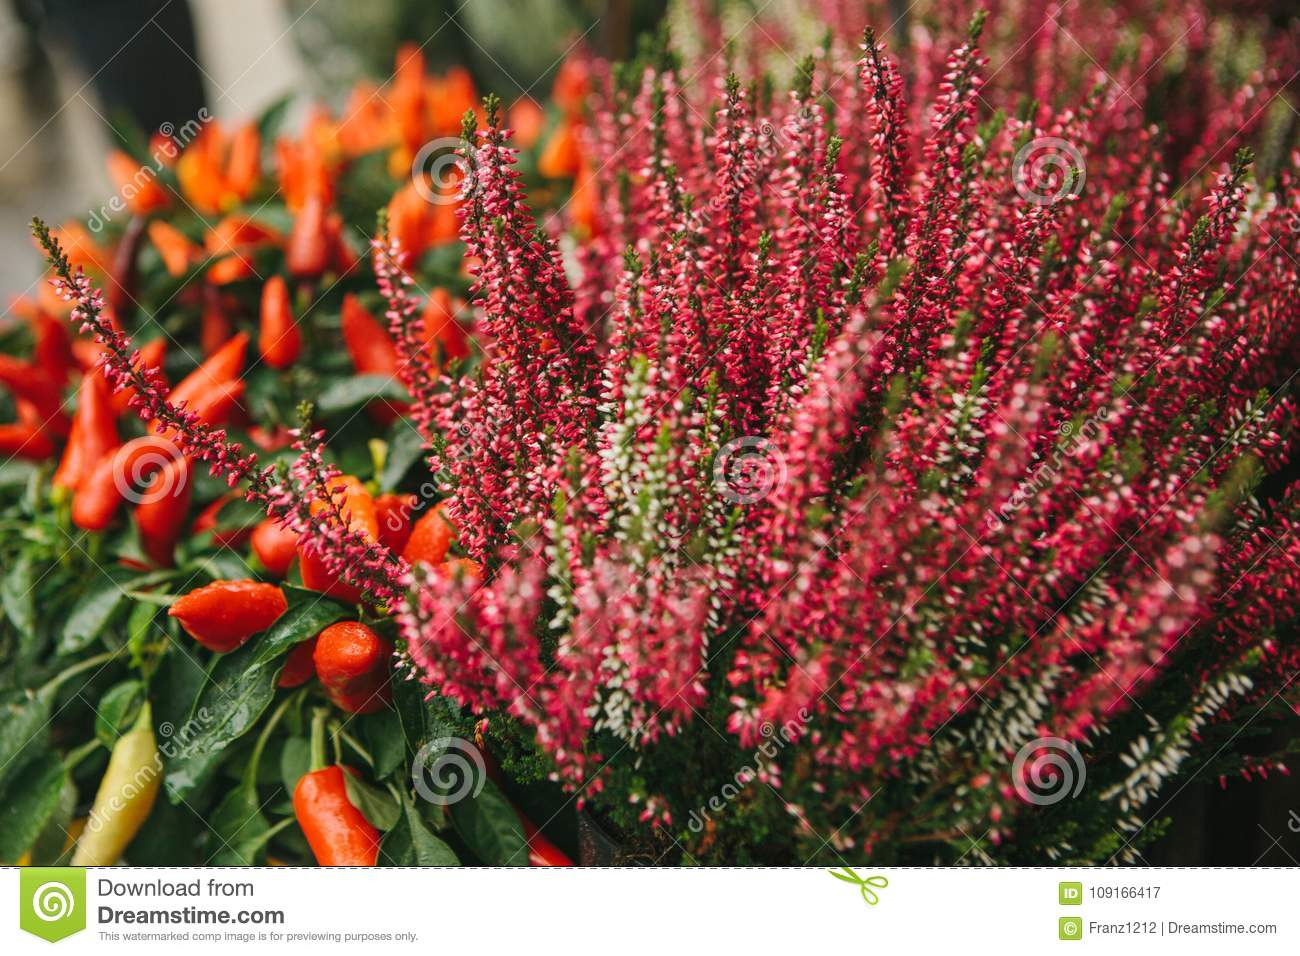 Beautiful pink and purple flowers knospenheide and calluna vulgaris and capsicum also called decorative peppers in